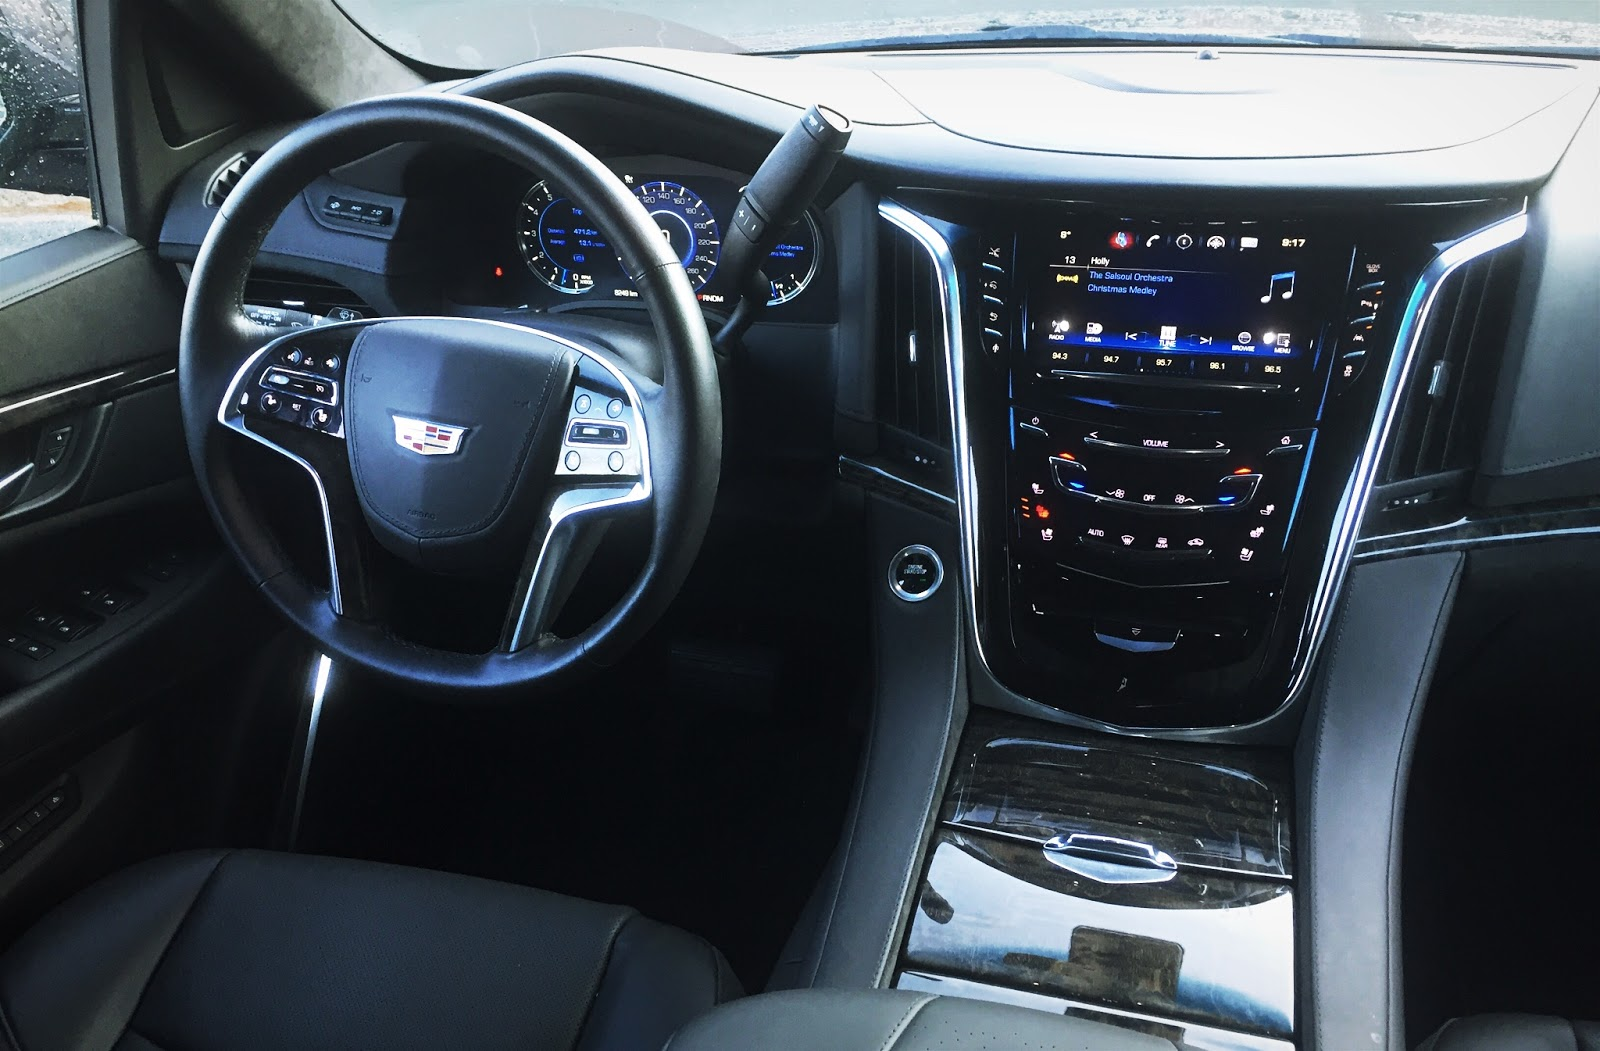 2015 Cadillac Escalade Platinum Interior Car Interior Design